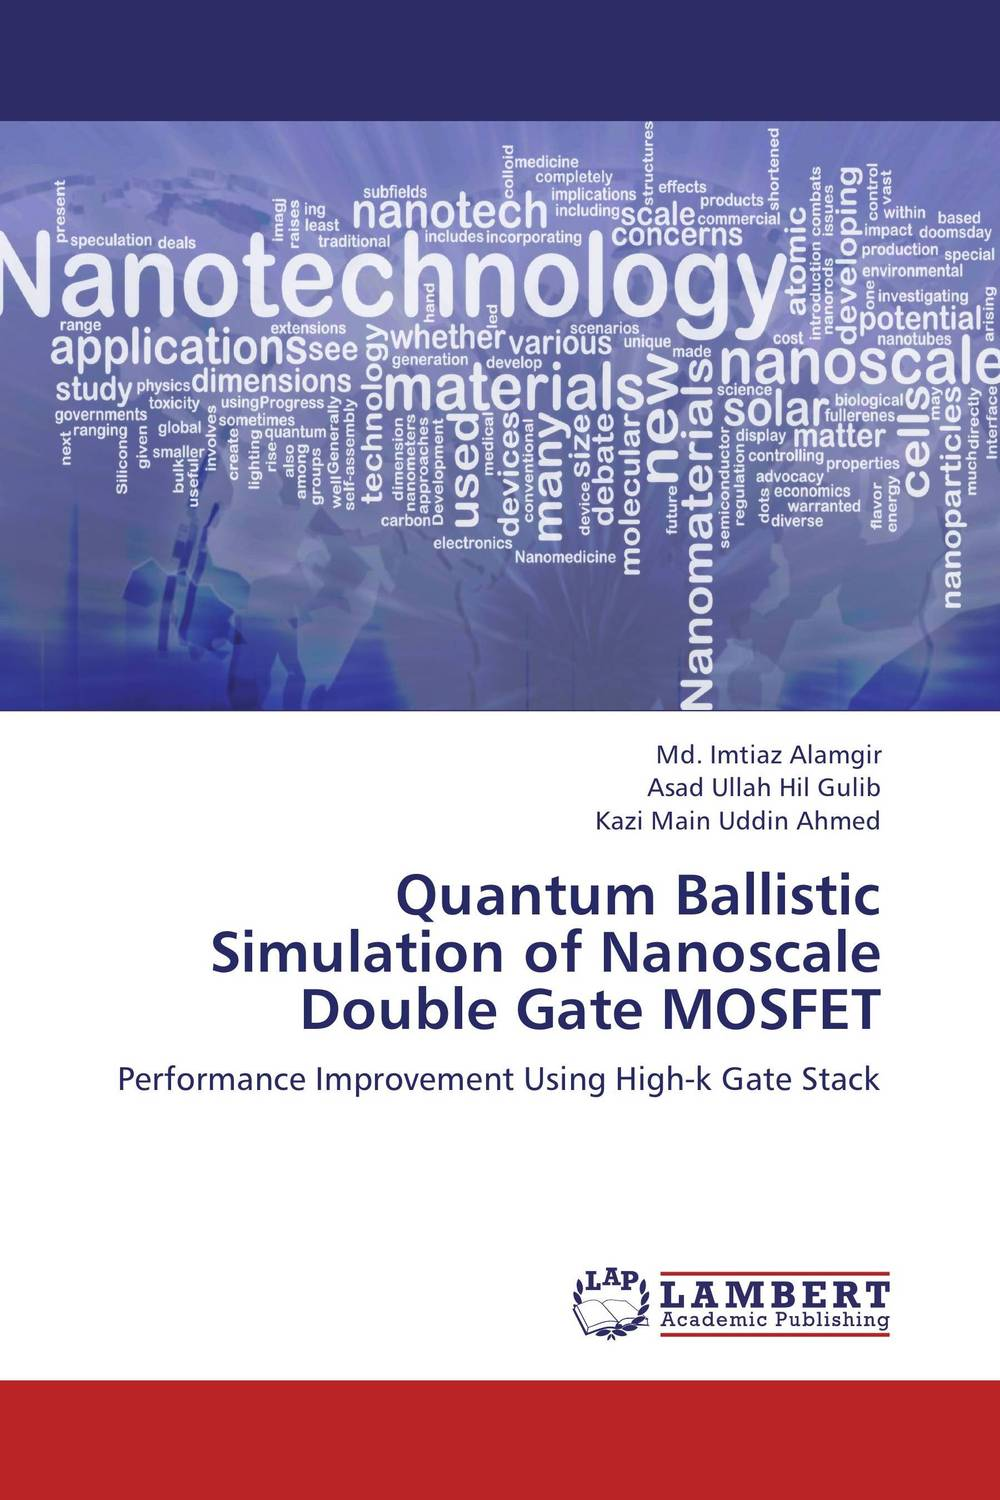 Quantum Ballistic Simulation of Nanoscale Double Gate MOSFET triple metal double gate tm dg mosfet